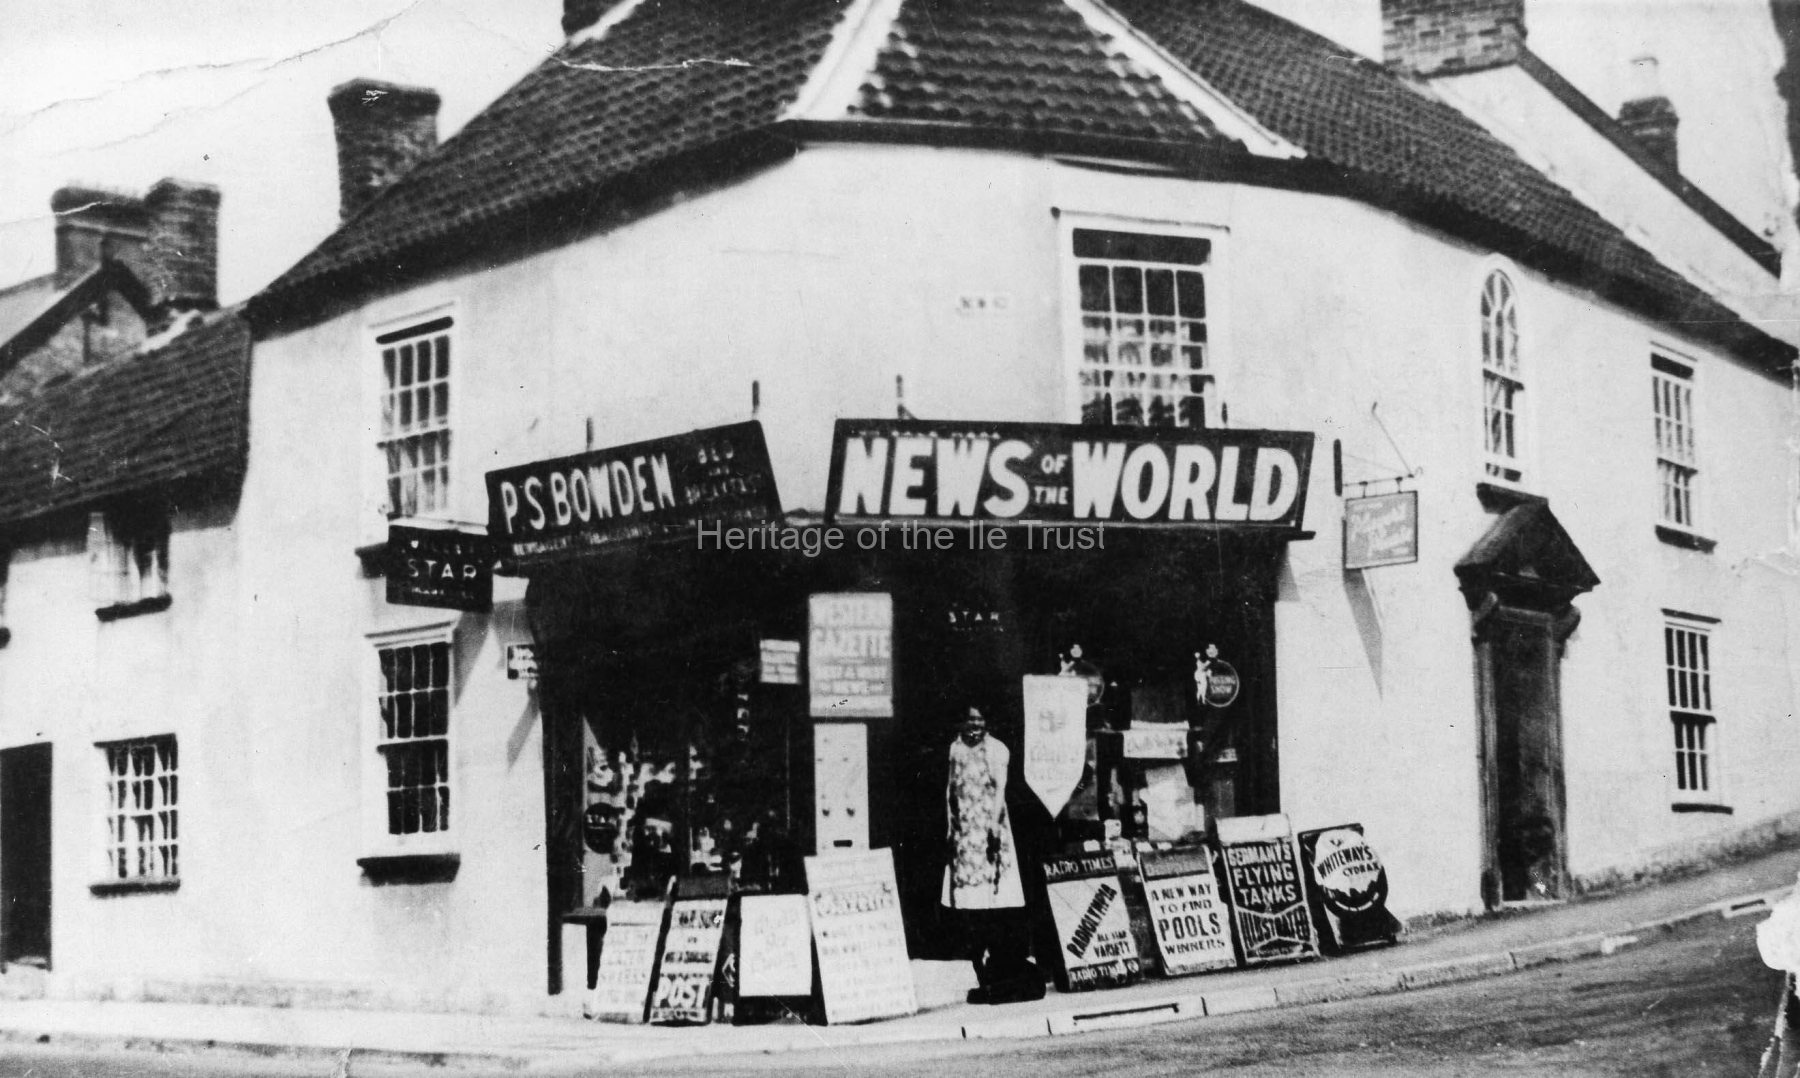 001006 P S Bowden's shop on corner of New Road c1937